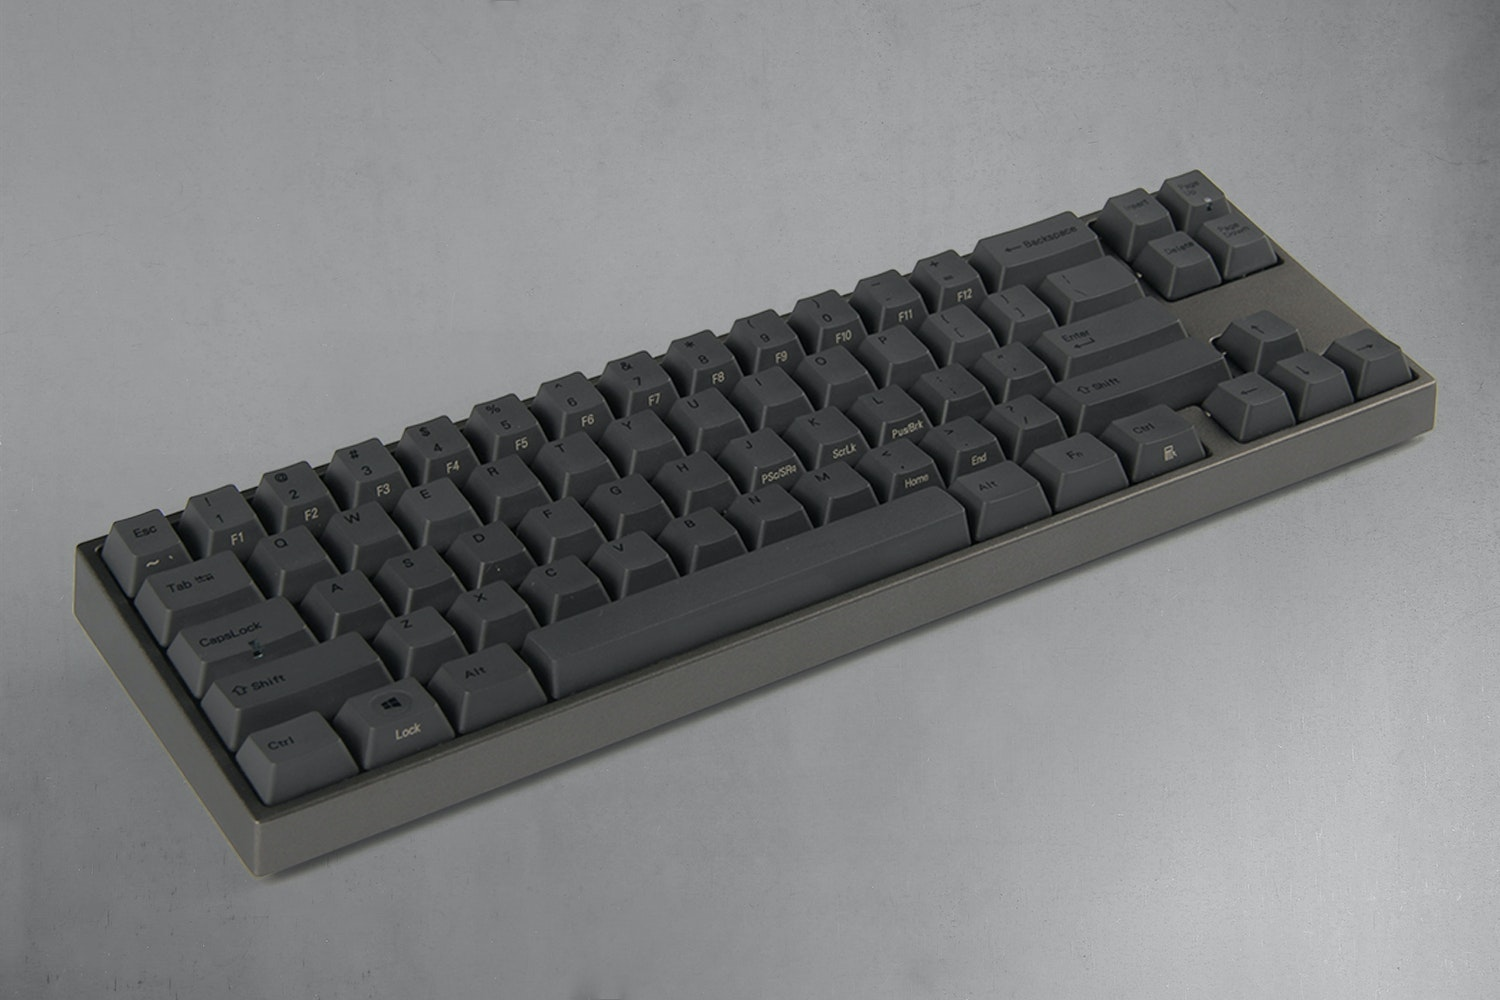 Charcoal Gray (Space Gray case, Red LEDs)